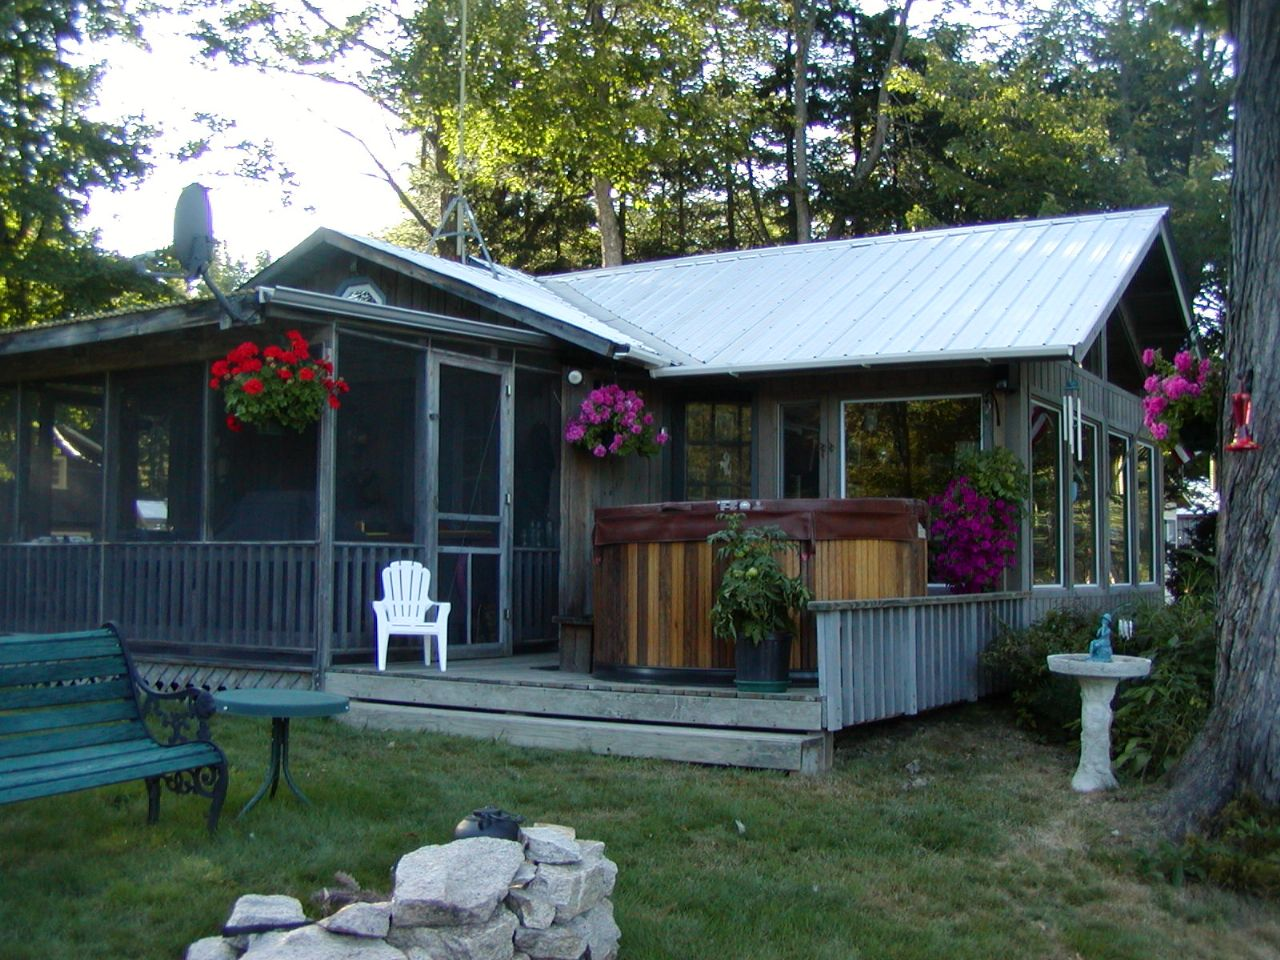 Errol Home, NH Real Estate Listing